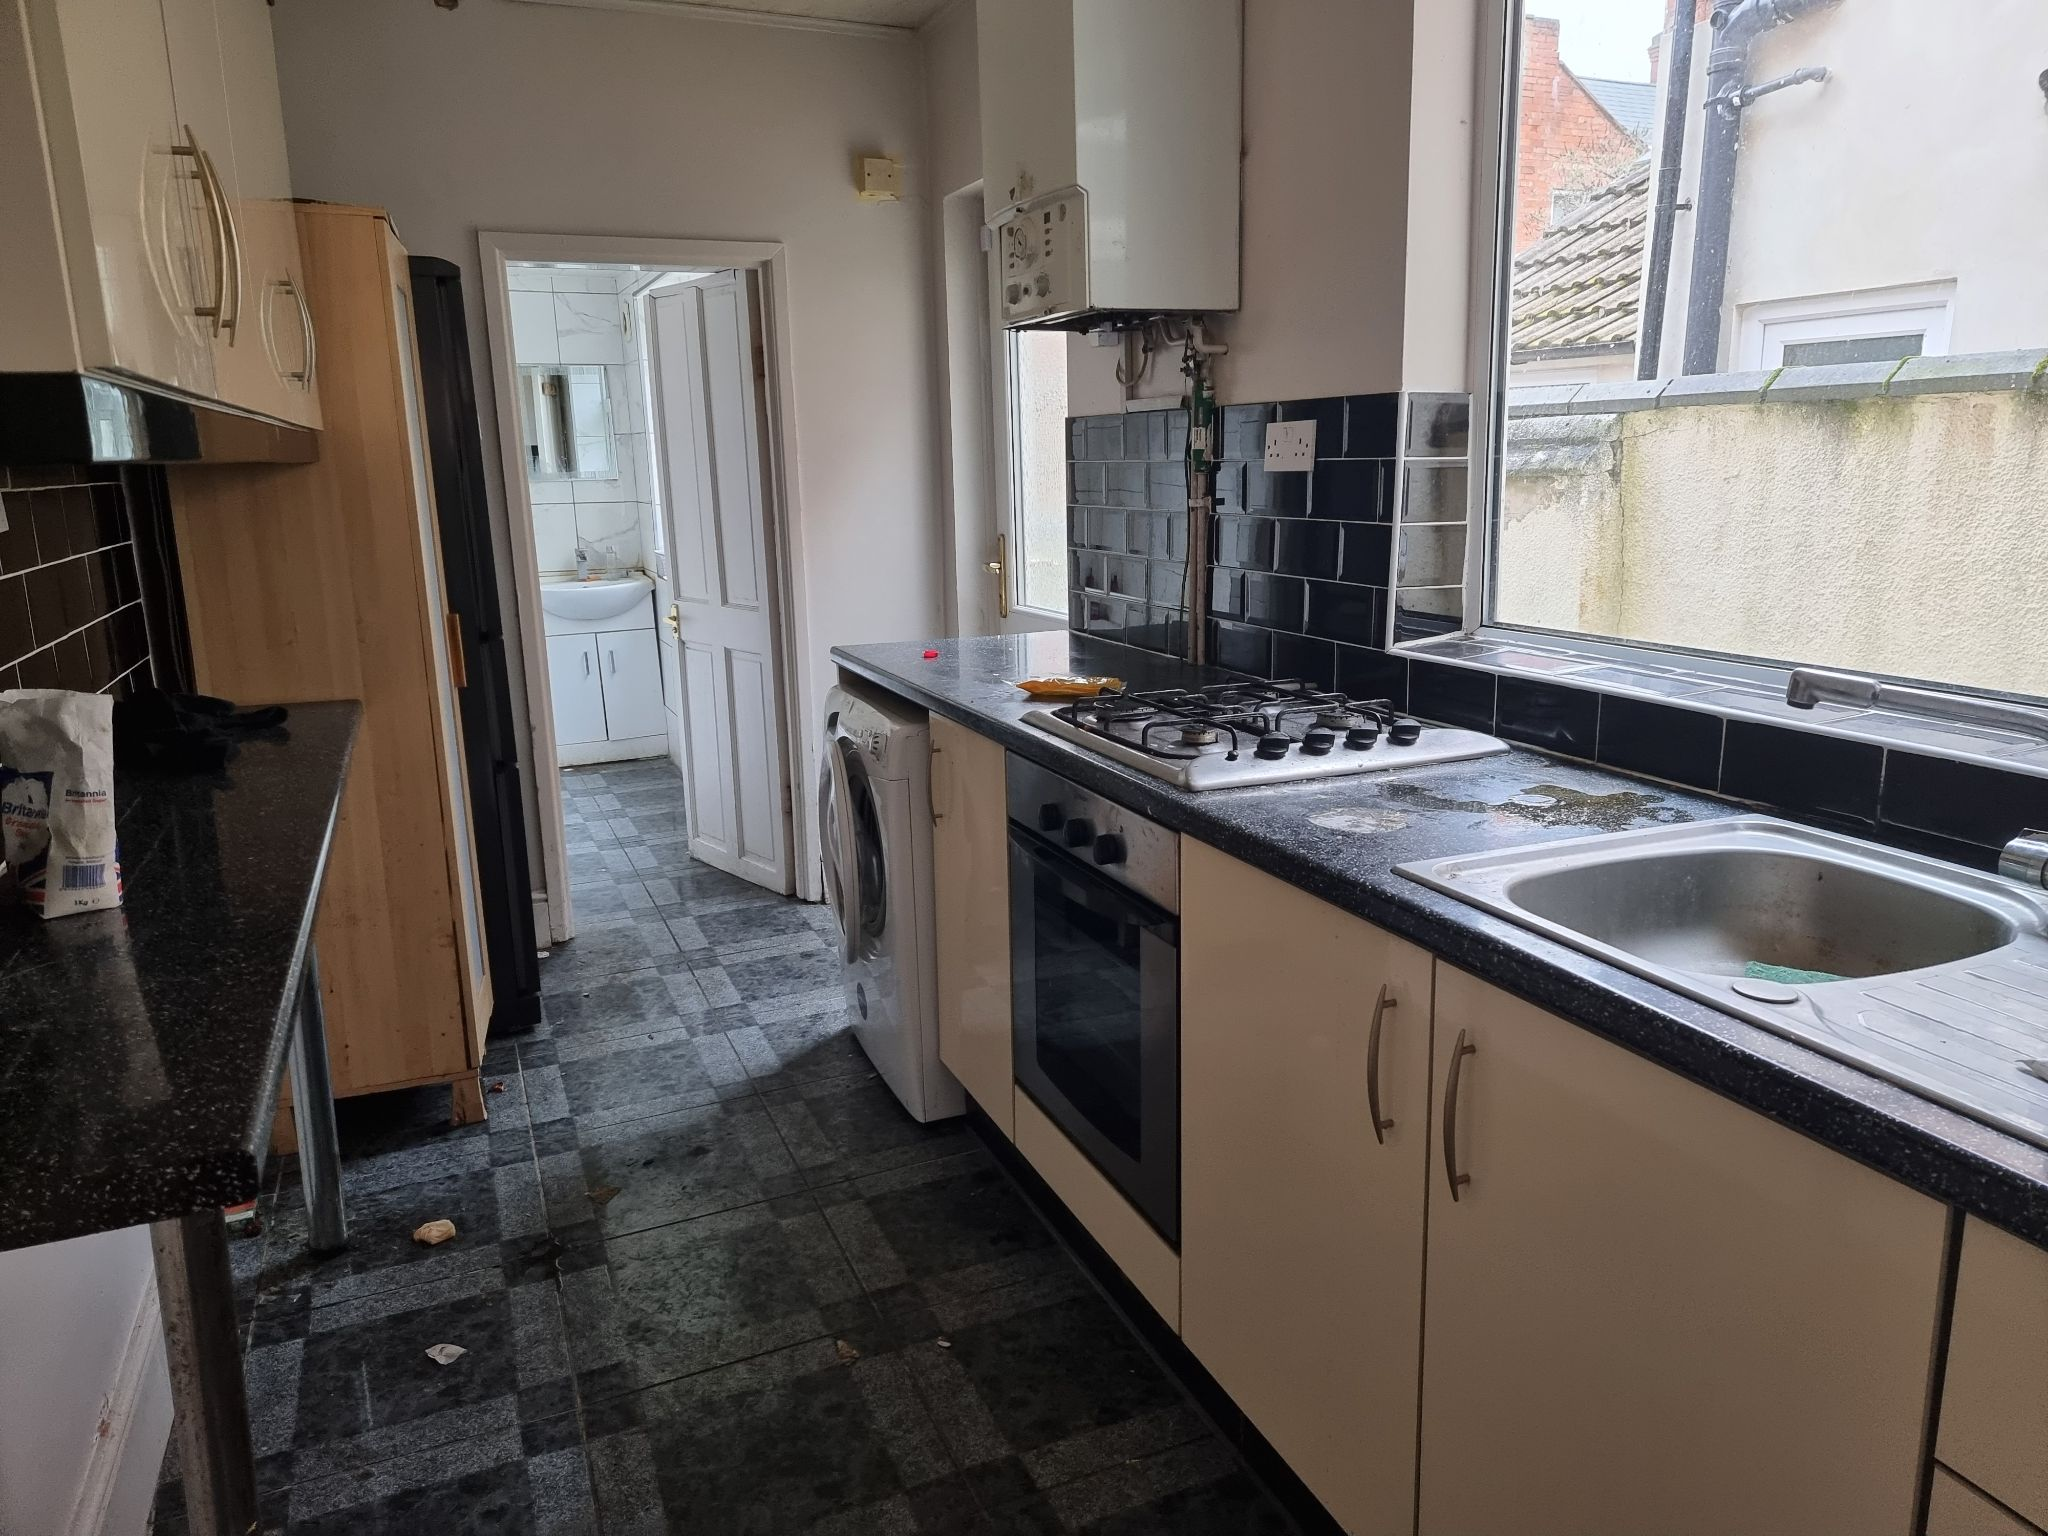 3 bedroom mid terraced house For Sale in Leicester - Photograph 5.